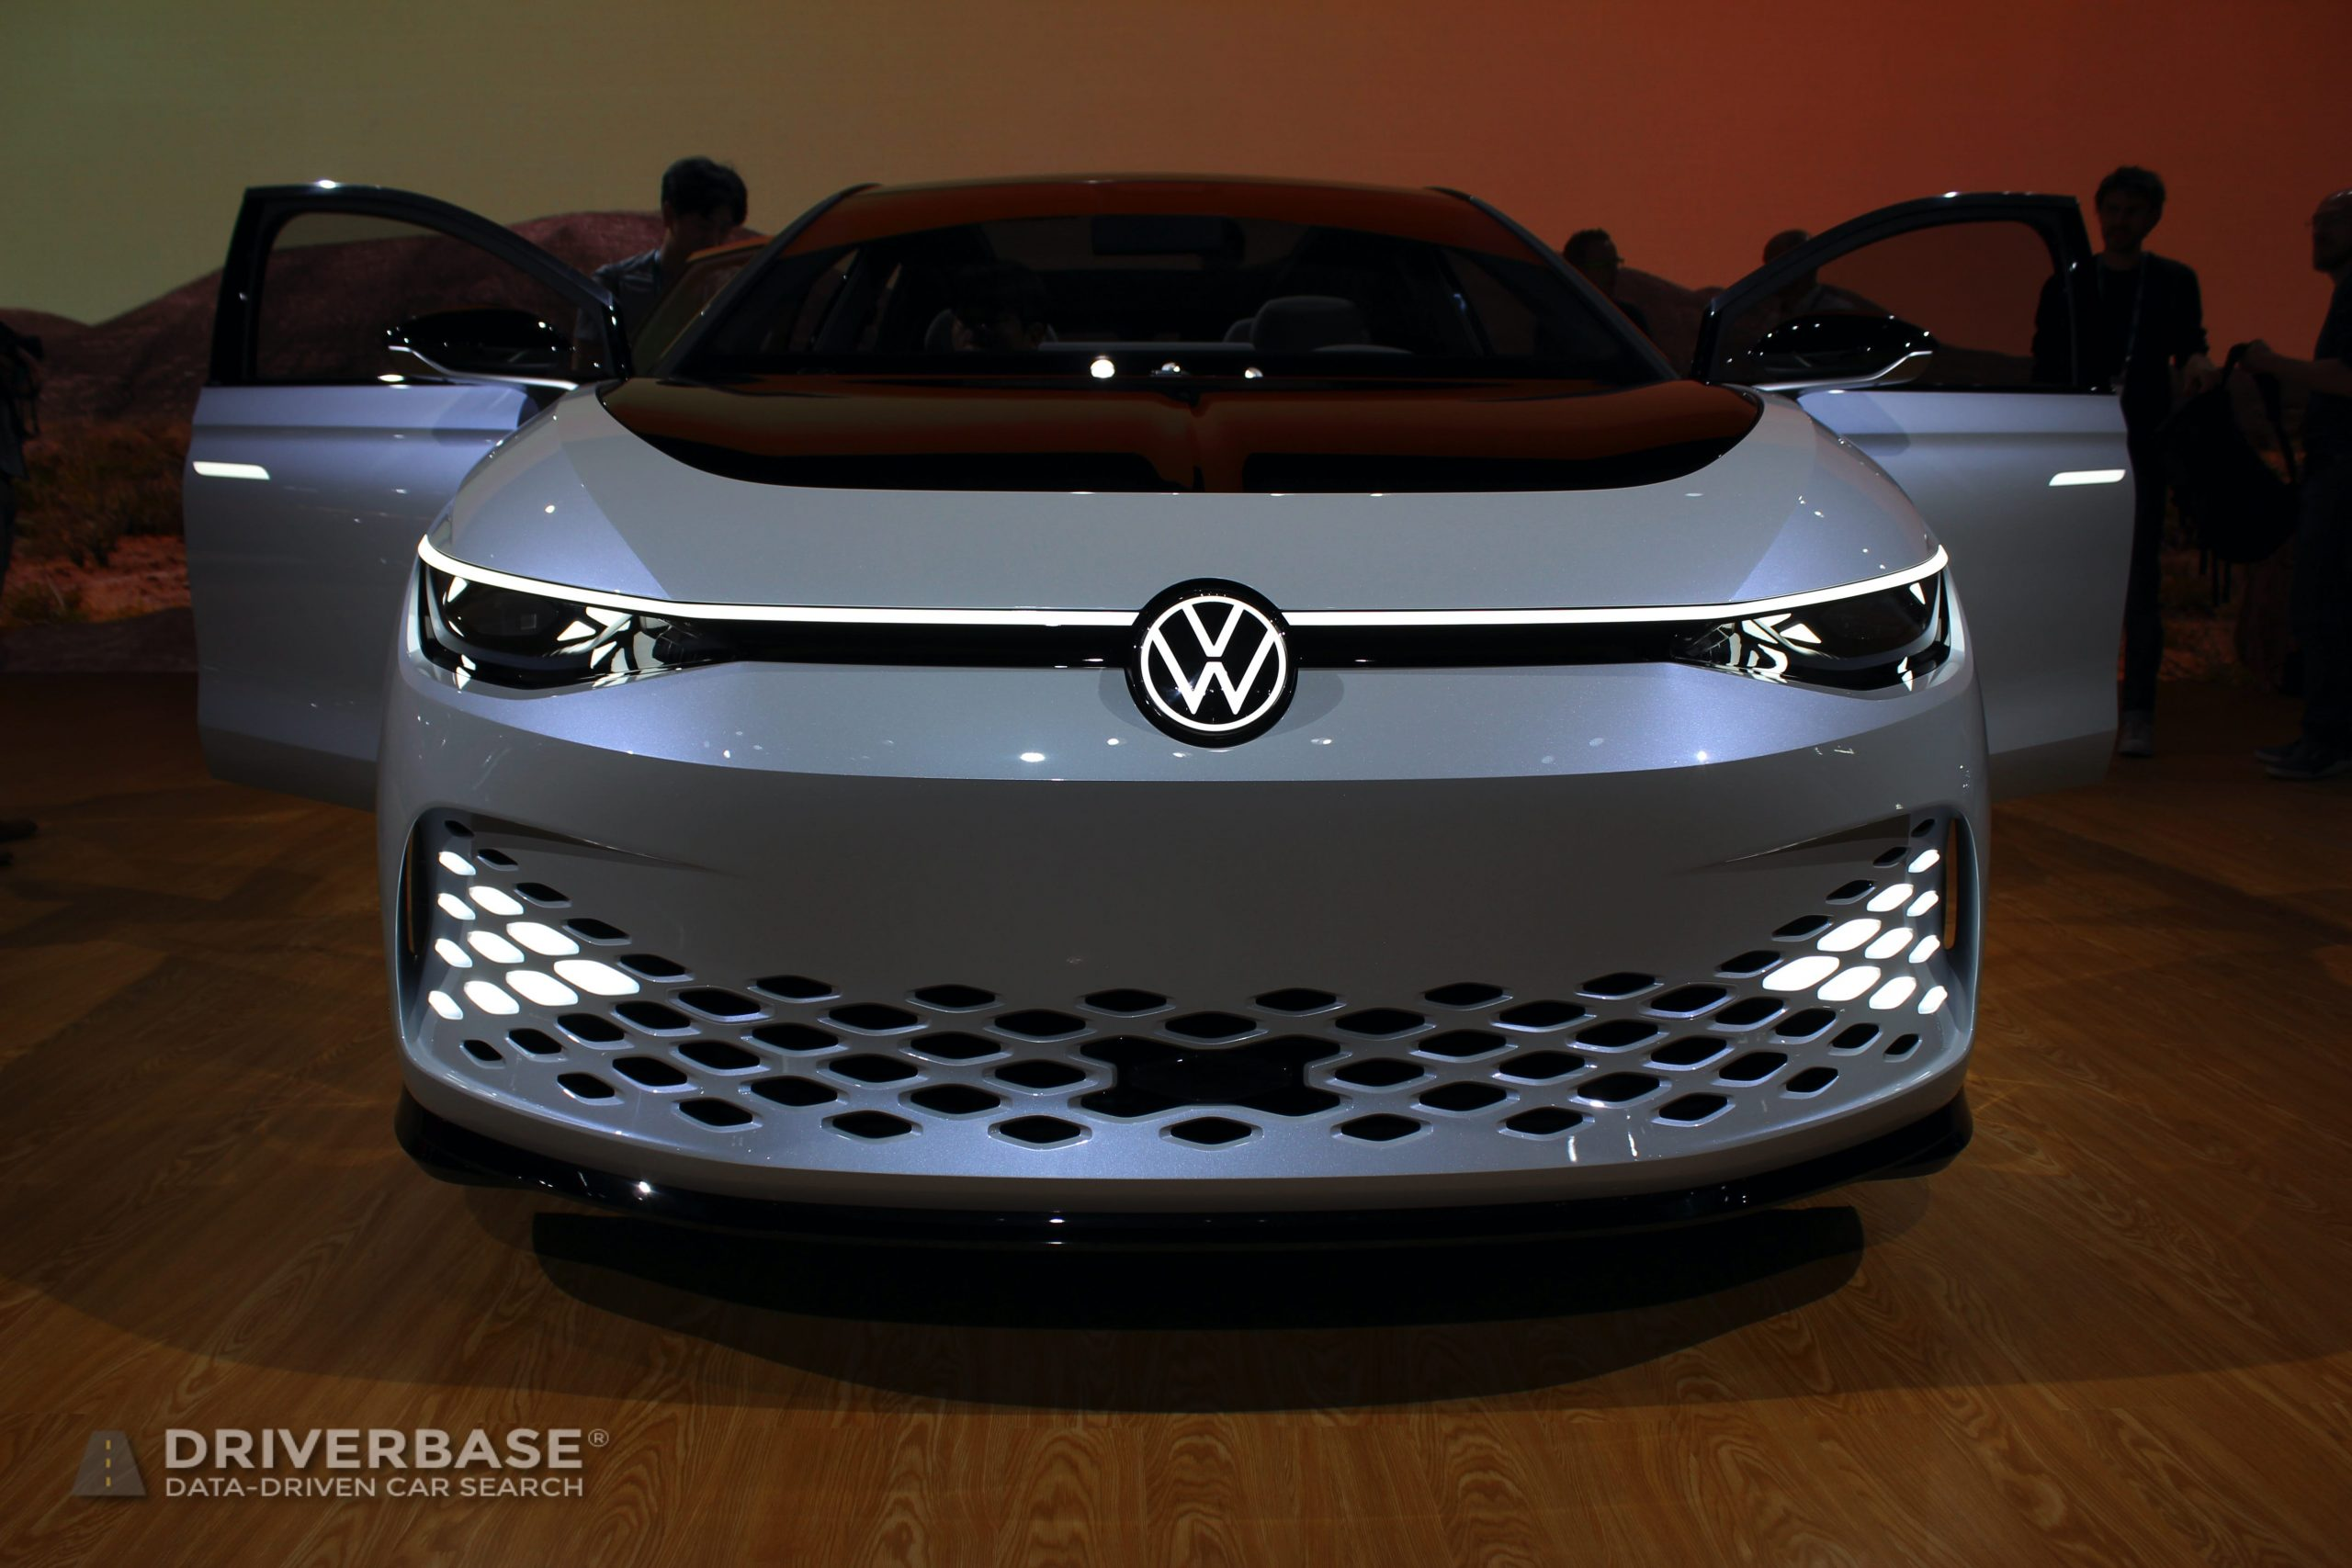 Volkswagen ID. Space Vizzion at the 2019 Los Angeles Auto Show